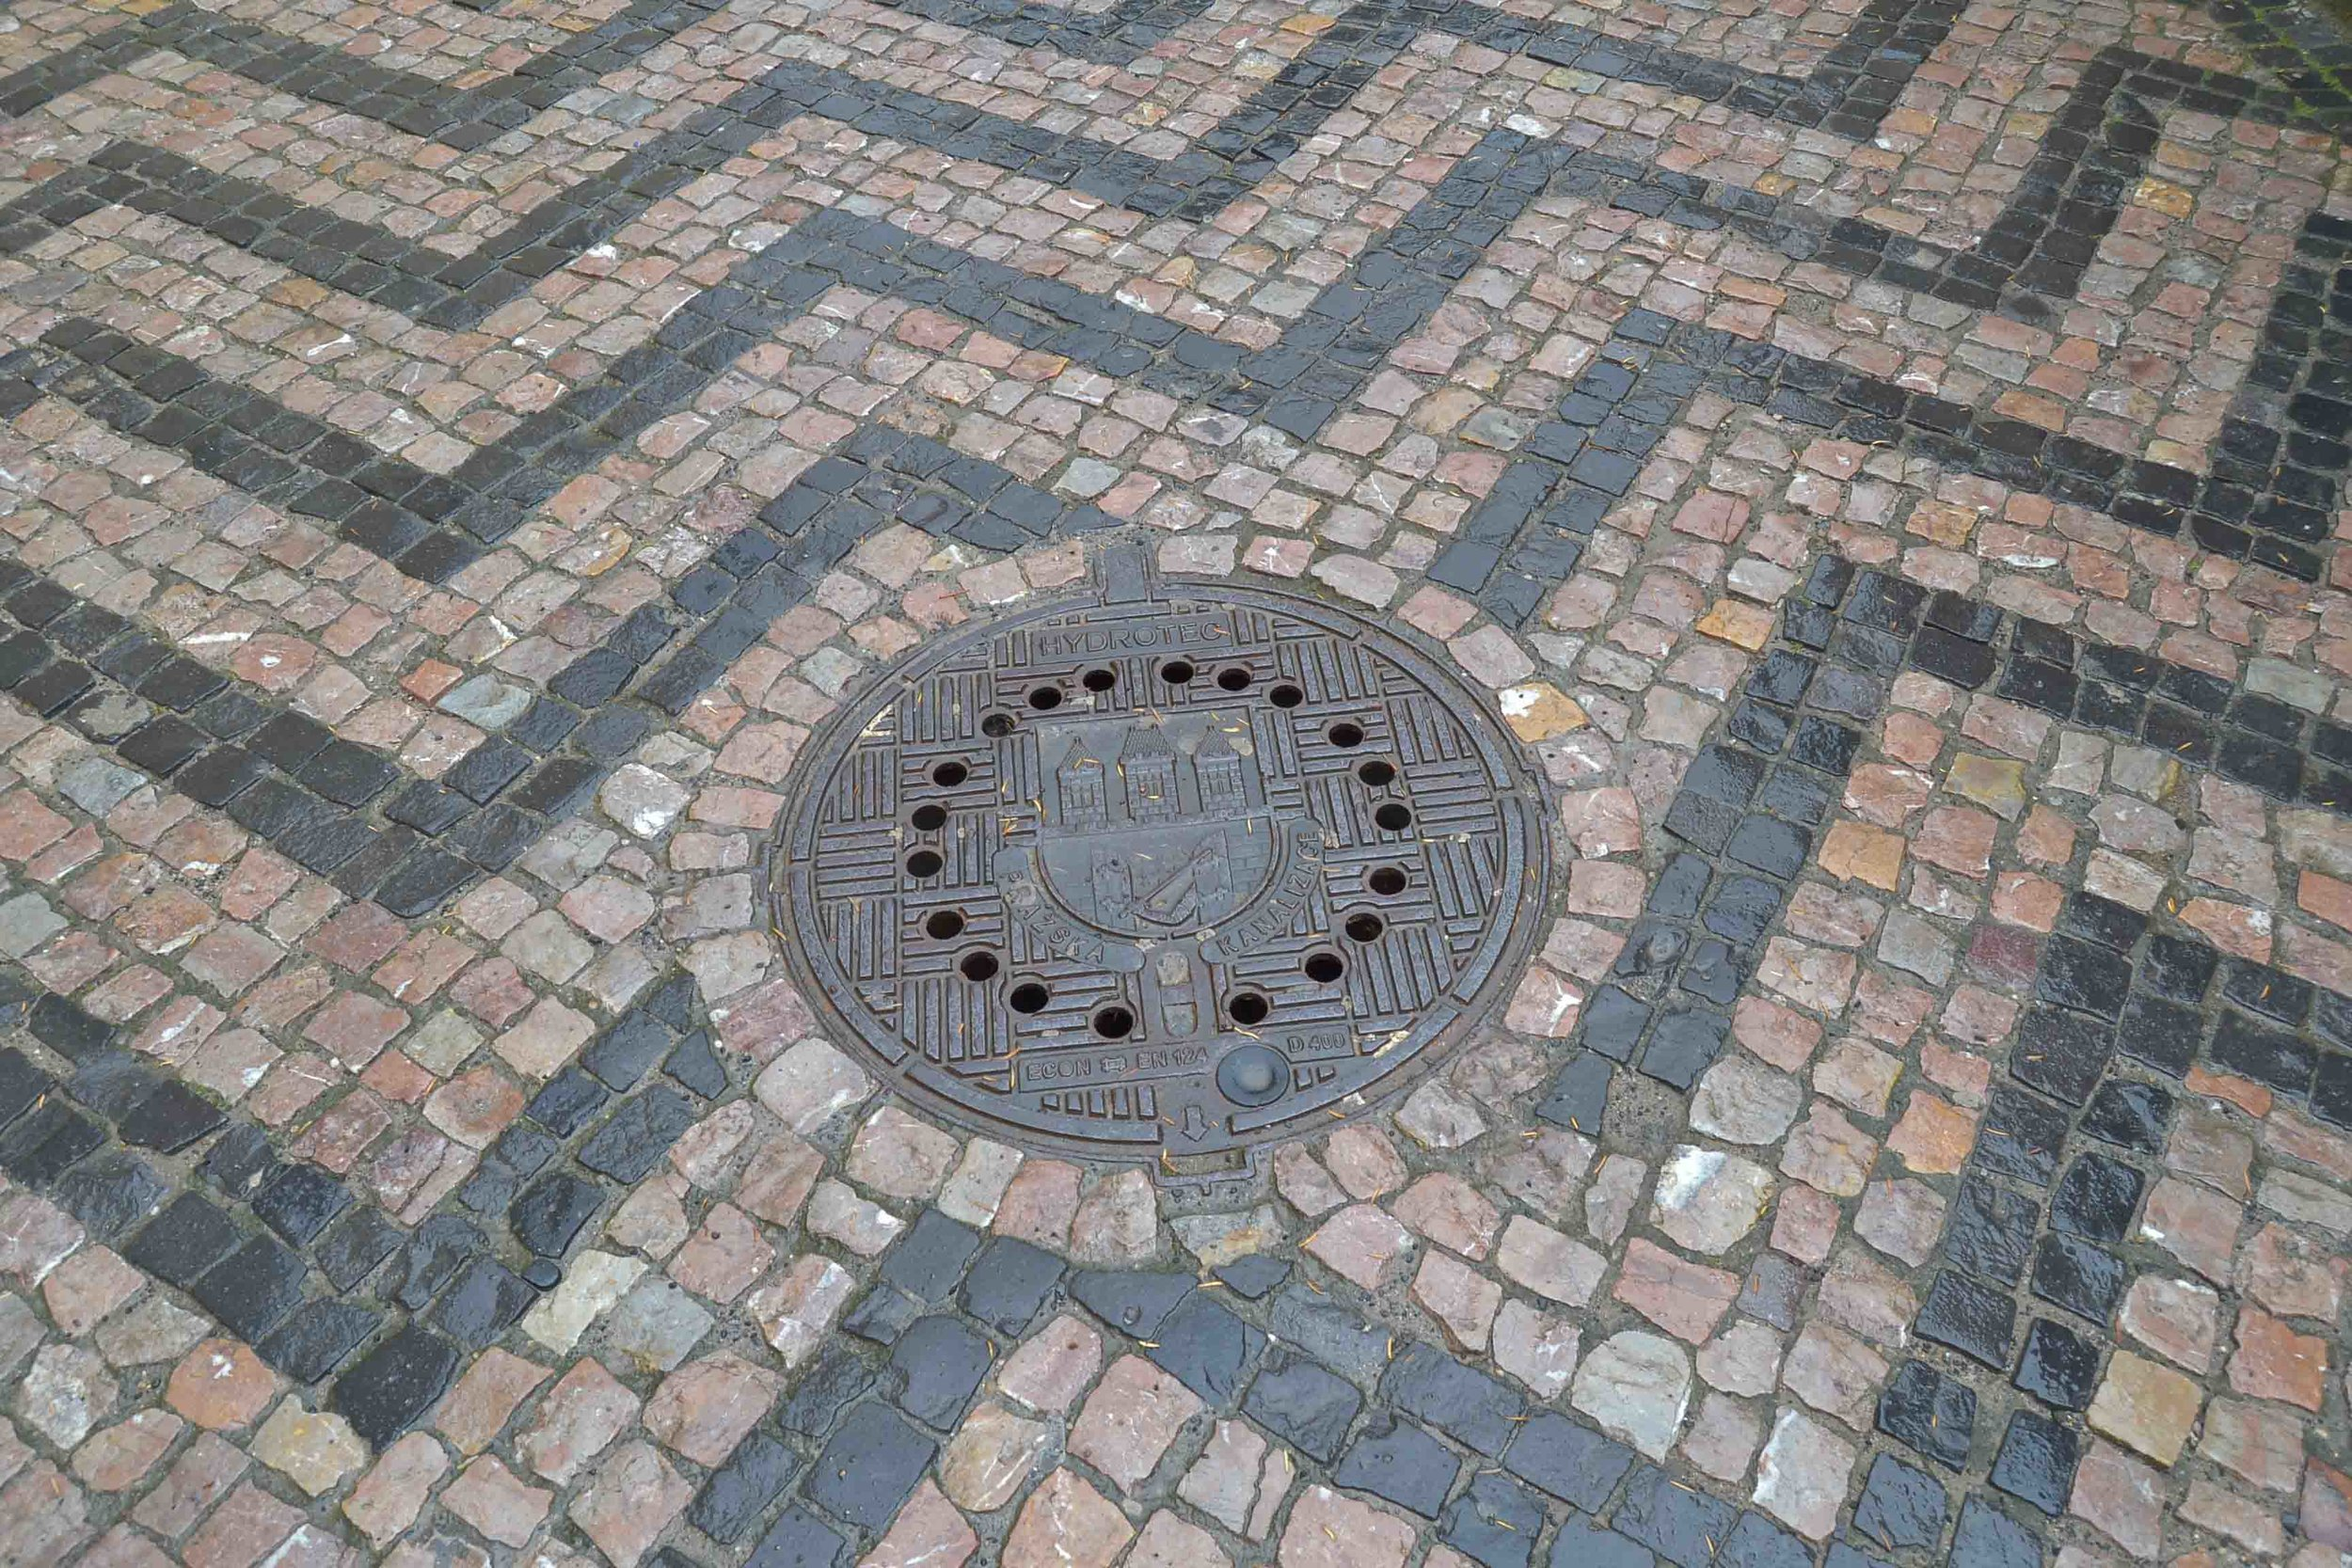 Even the manholes are beautiful!